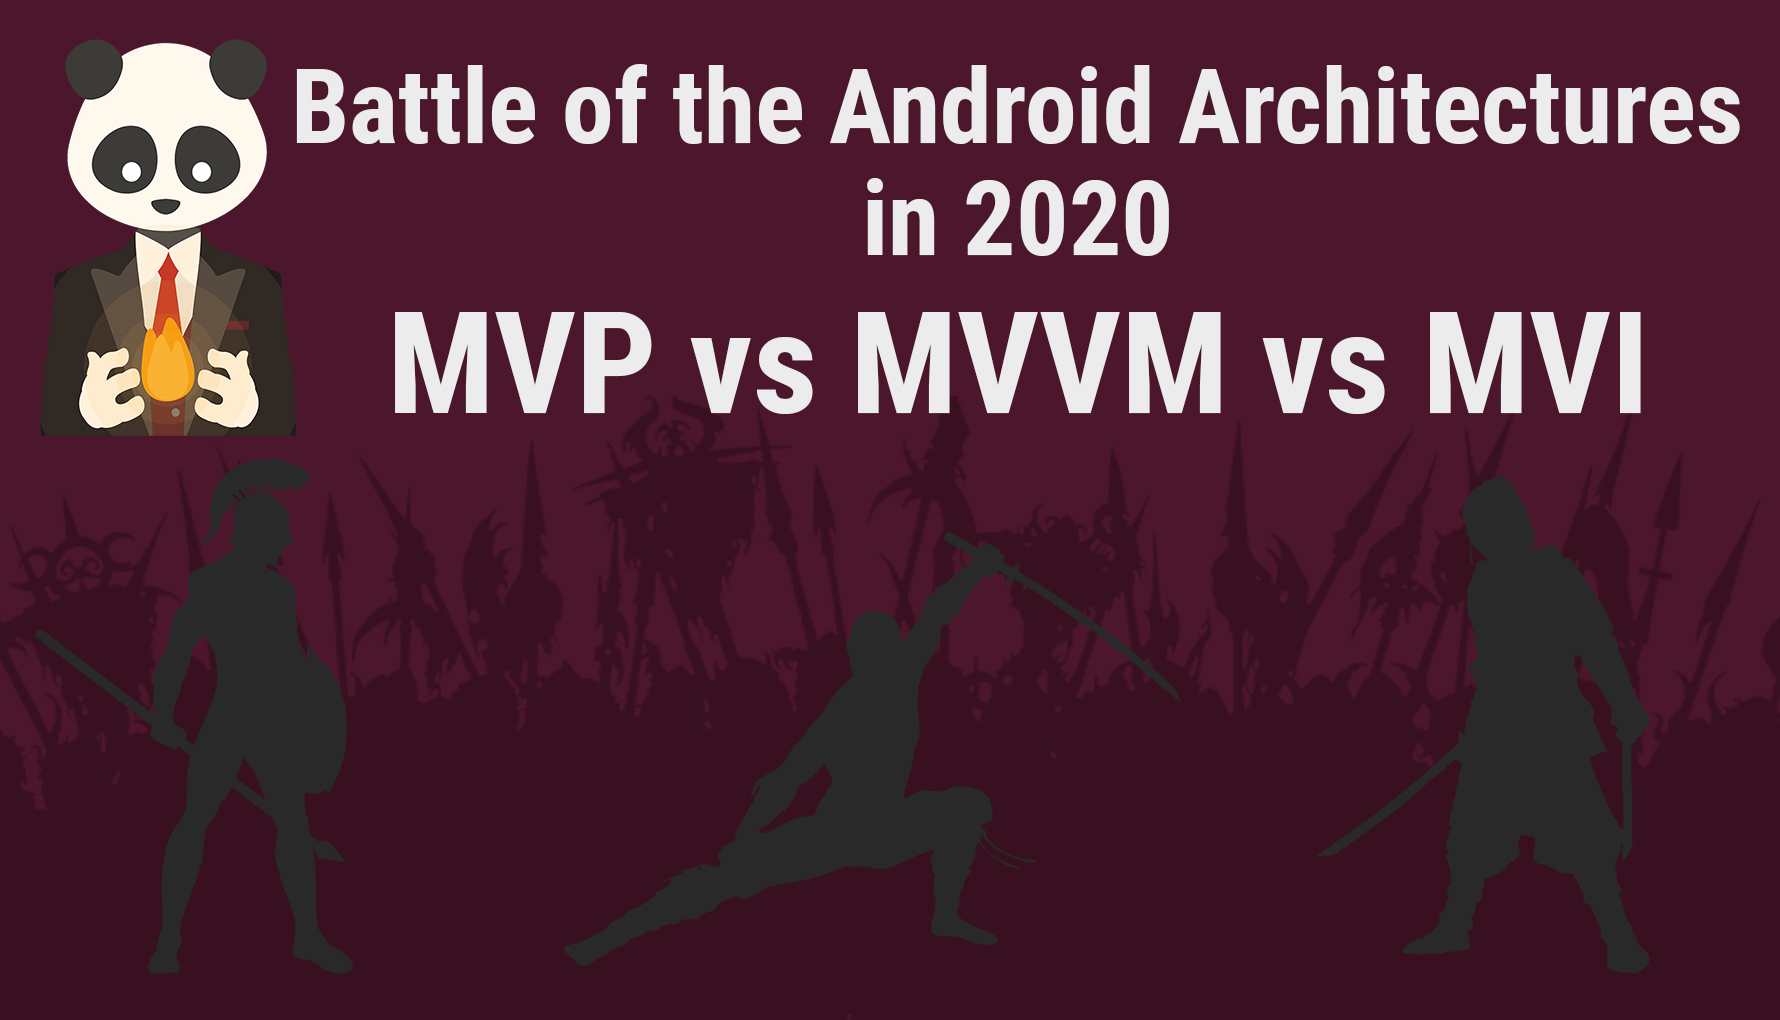 Battle of the Android Architectures: MVP vs MVVM vs MVI